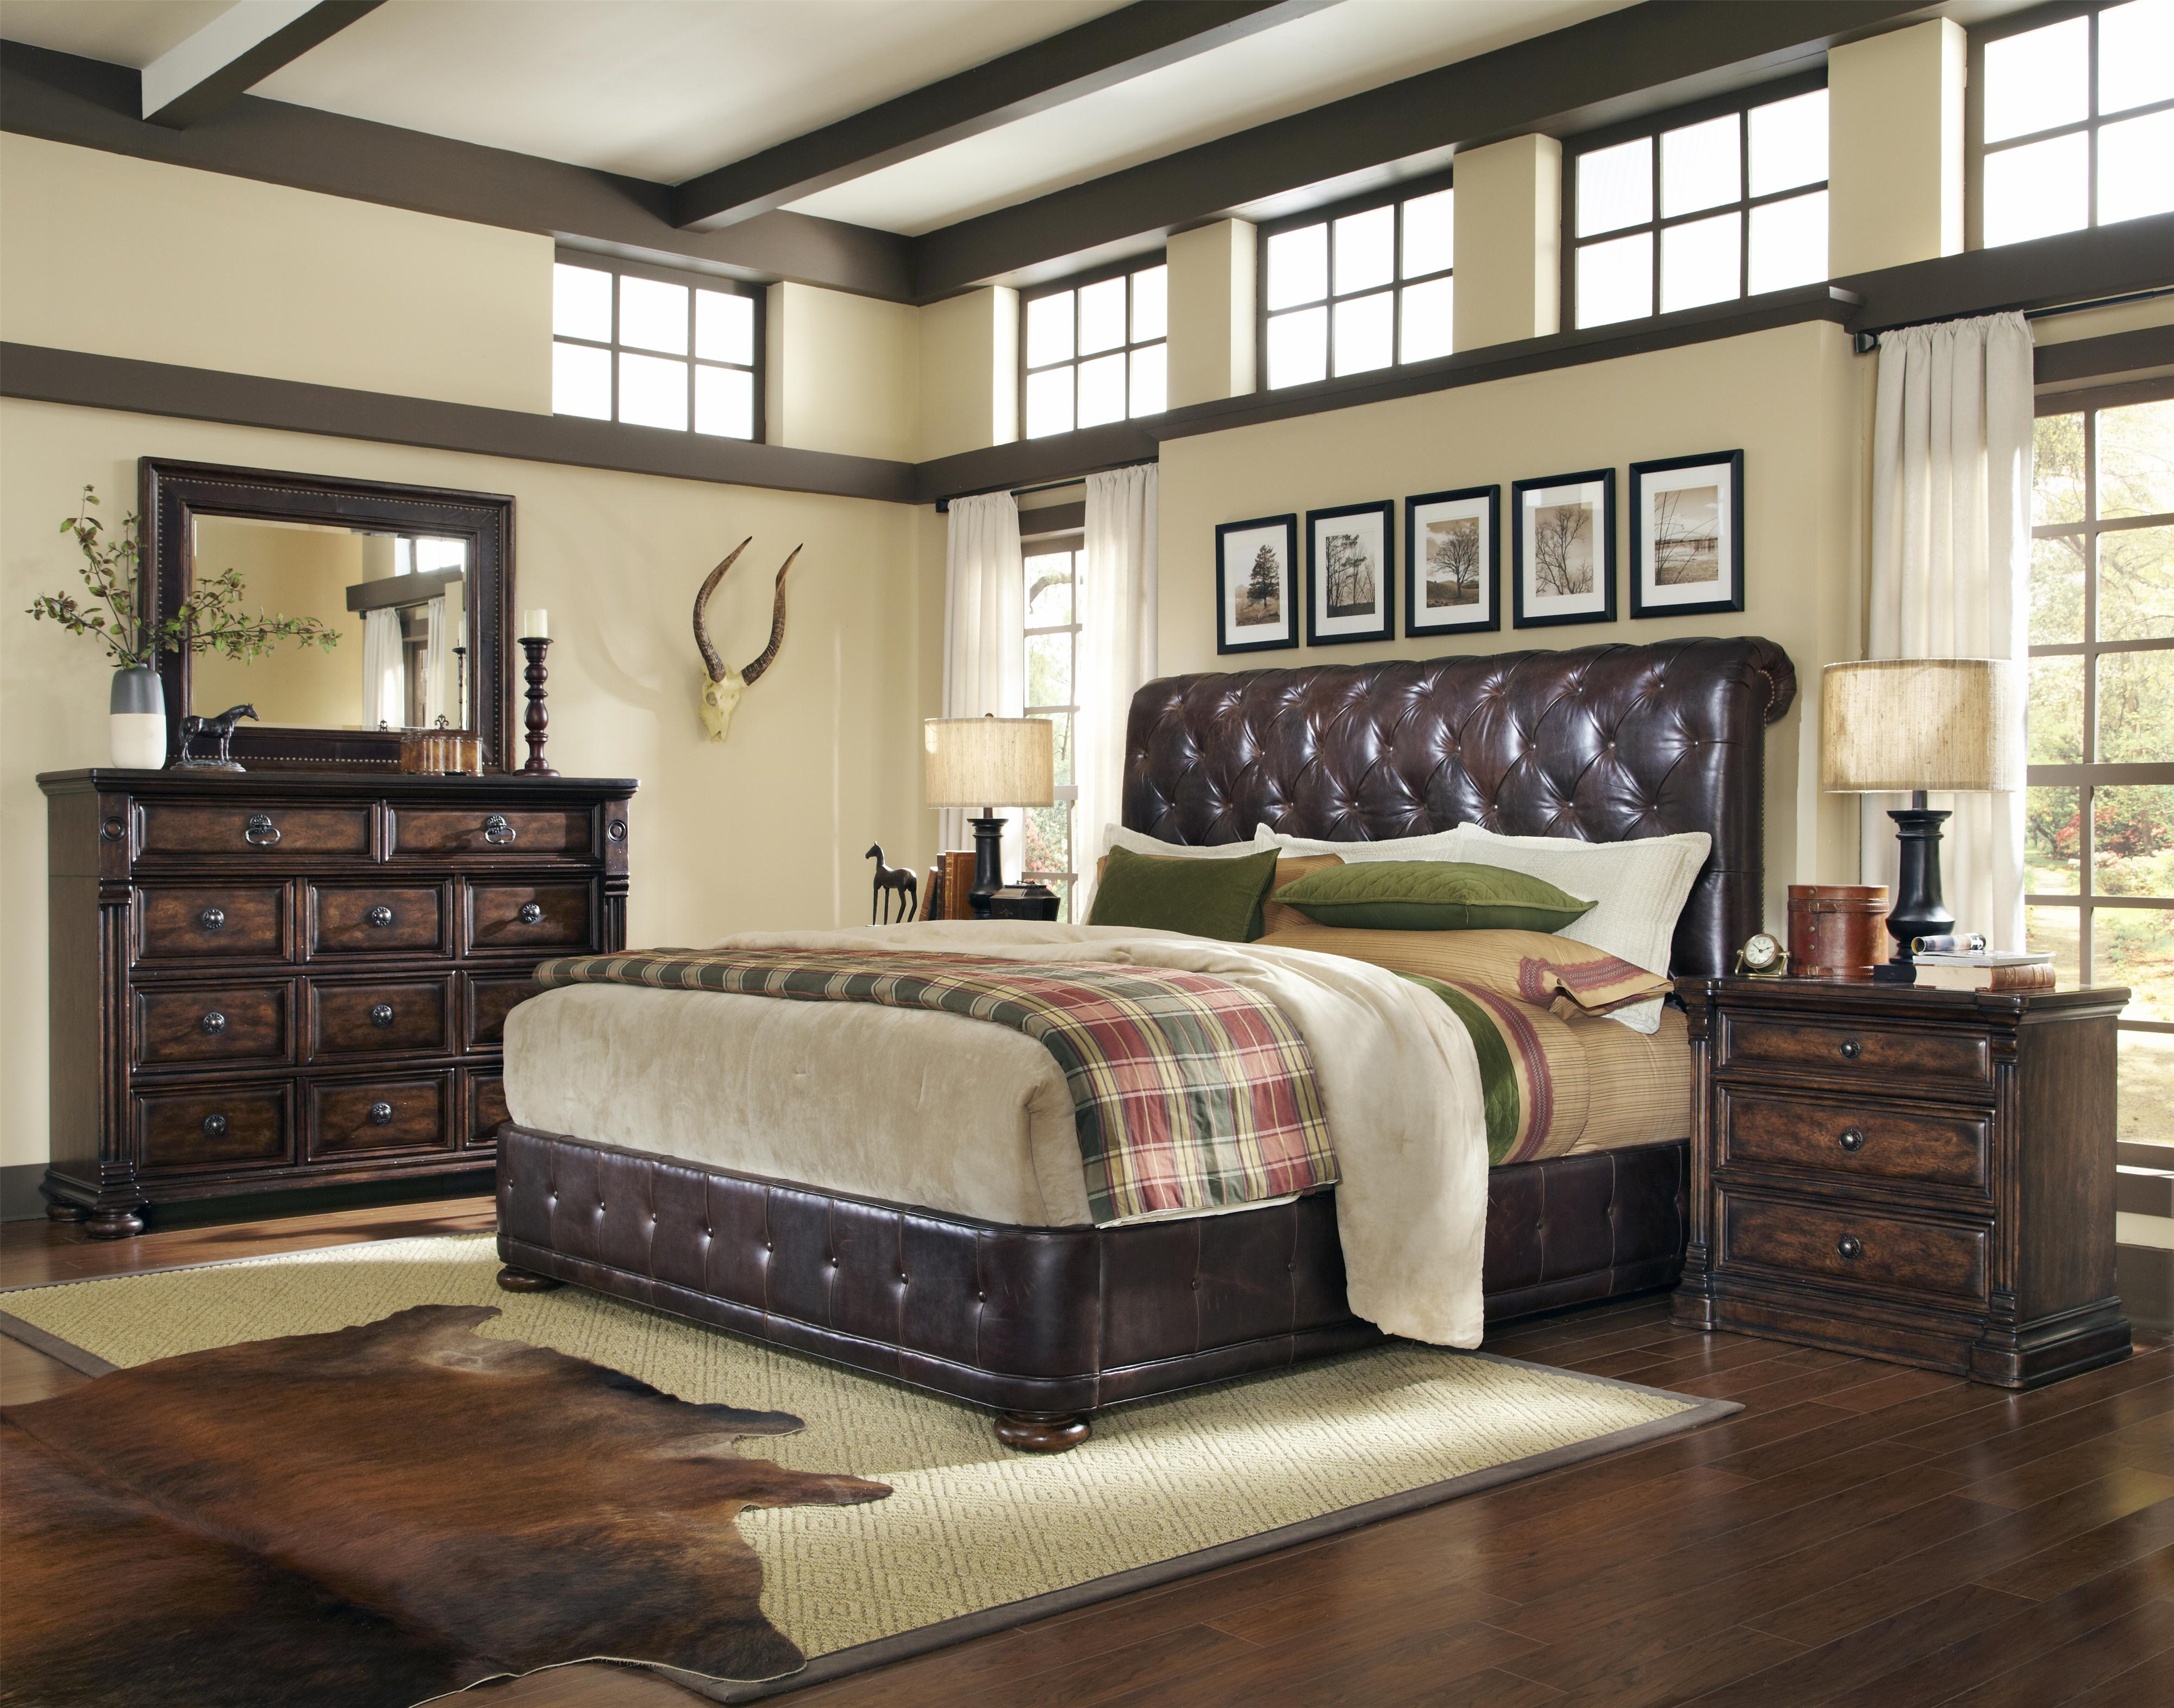 Belfort Signature Belvedere King Bedroom Group - Item Number: 205000 K Bedroom Group 4